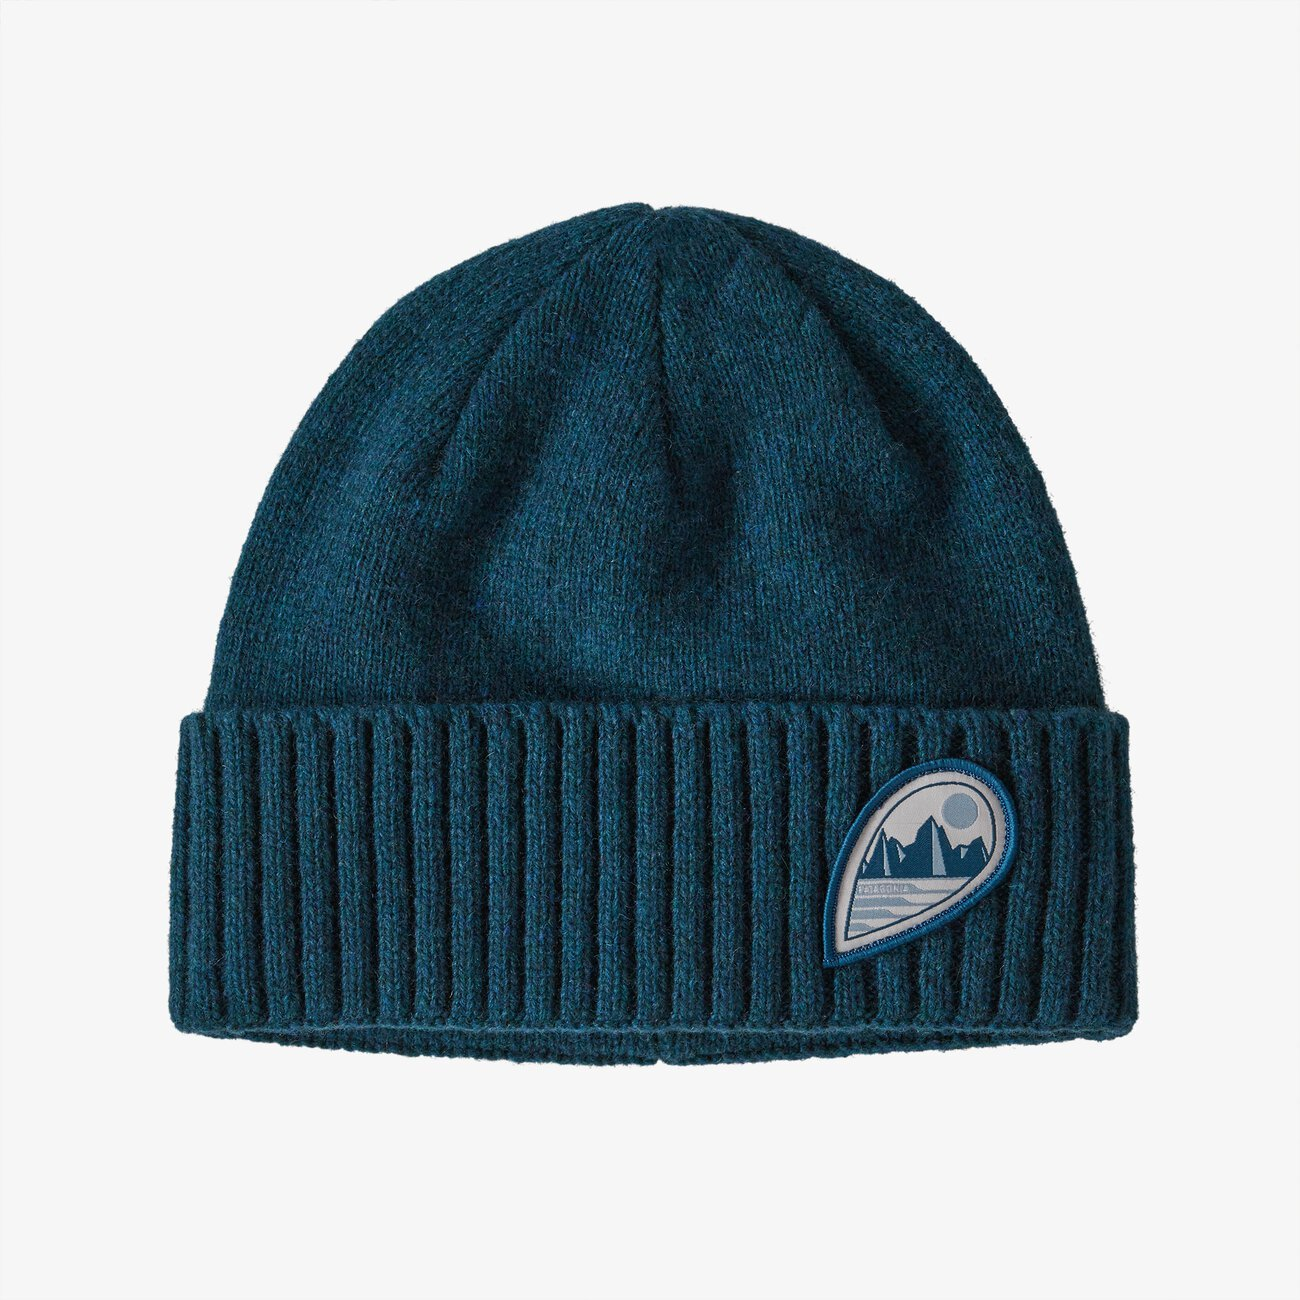 PATAGONIA BRODEO BEANIE - CRATER BLUE